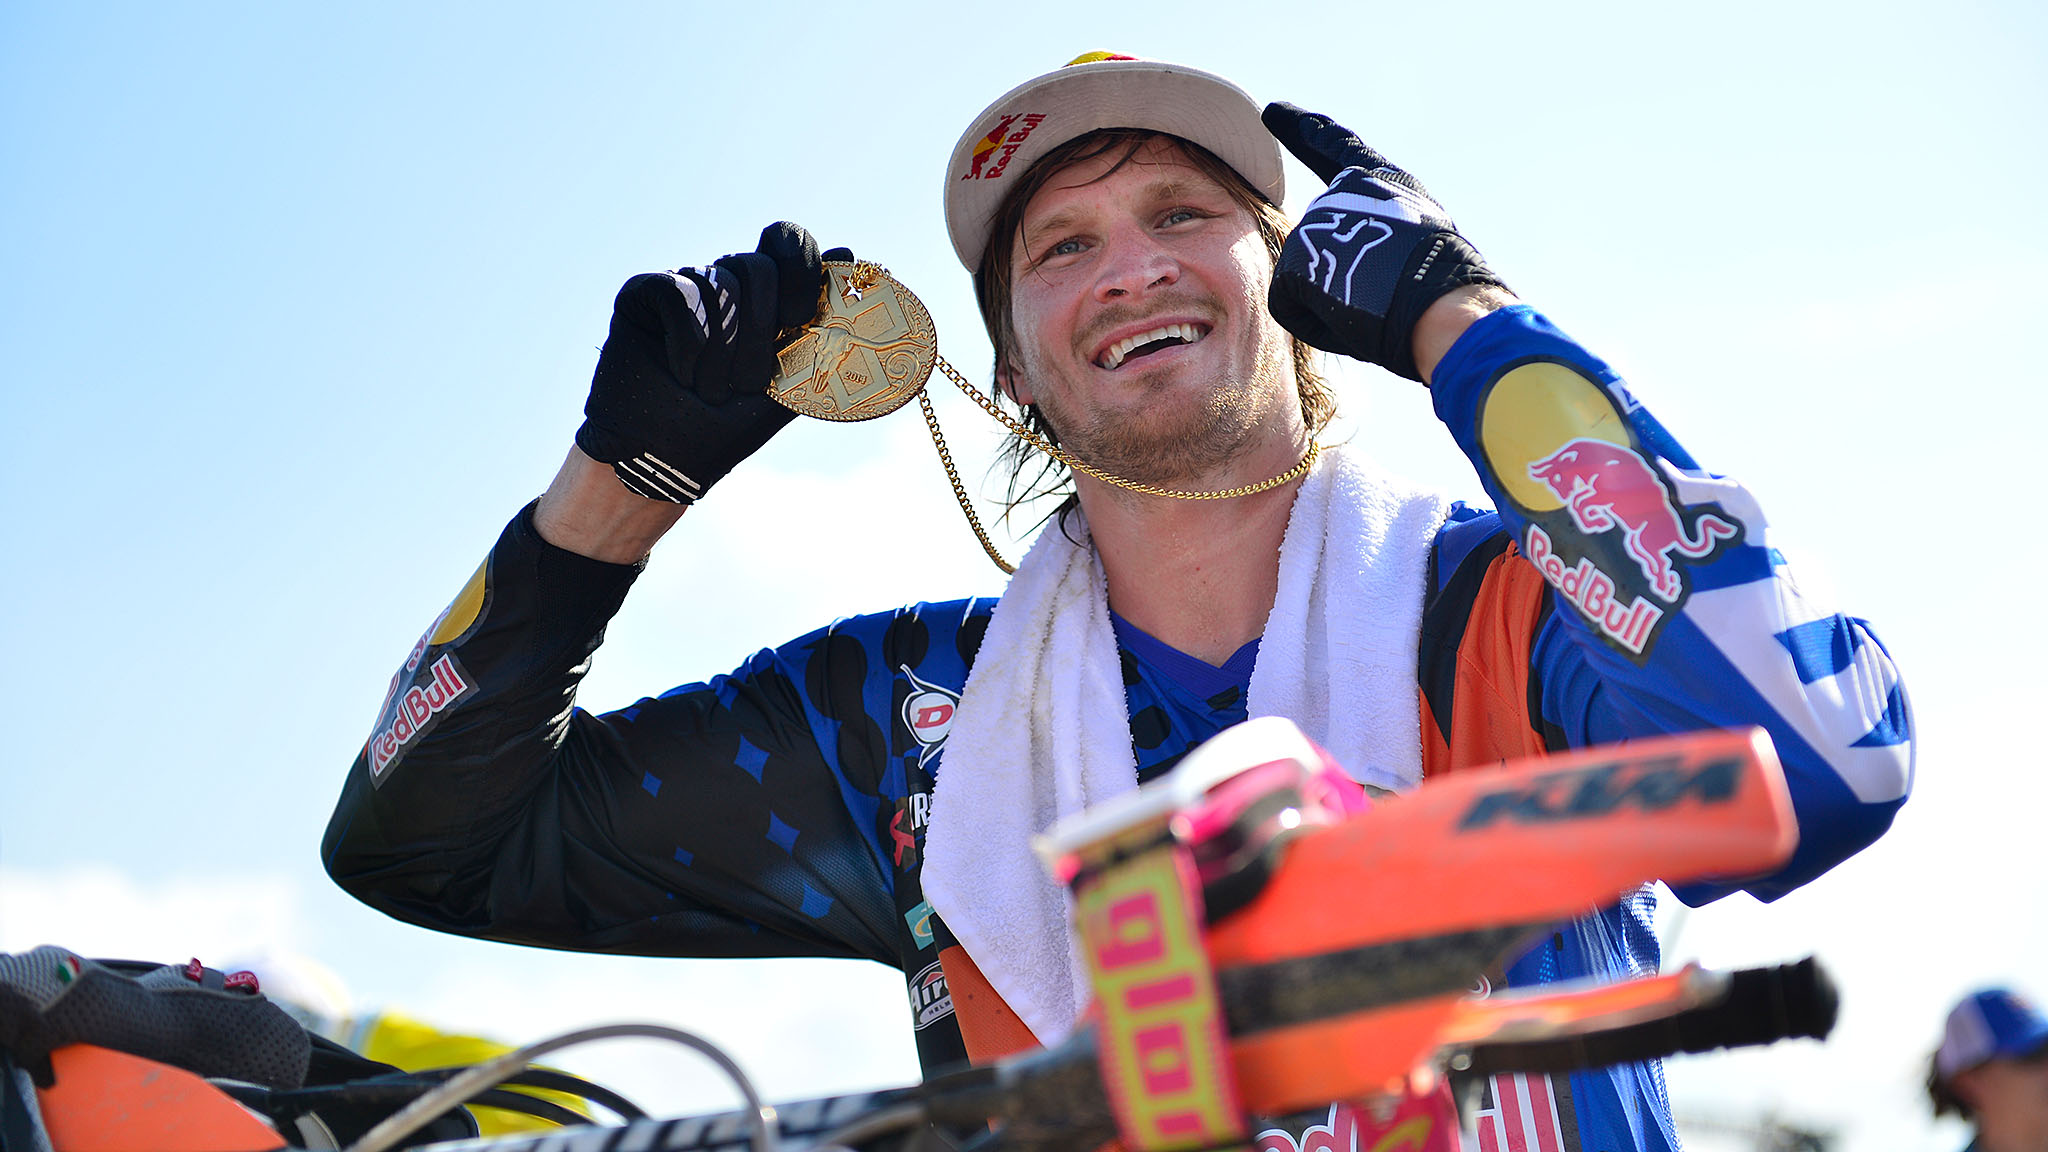 Enduro X favorite and defending champion Taddy Blazusiak collected his fourth X Games gold medal on Friday in a hard-fought battle. Mike Brown held the inside line out of the first turn, but Blazusiak overtook him before the end of the first of 10 laps.